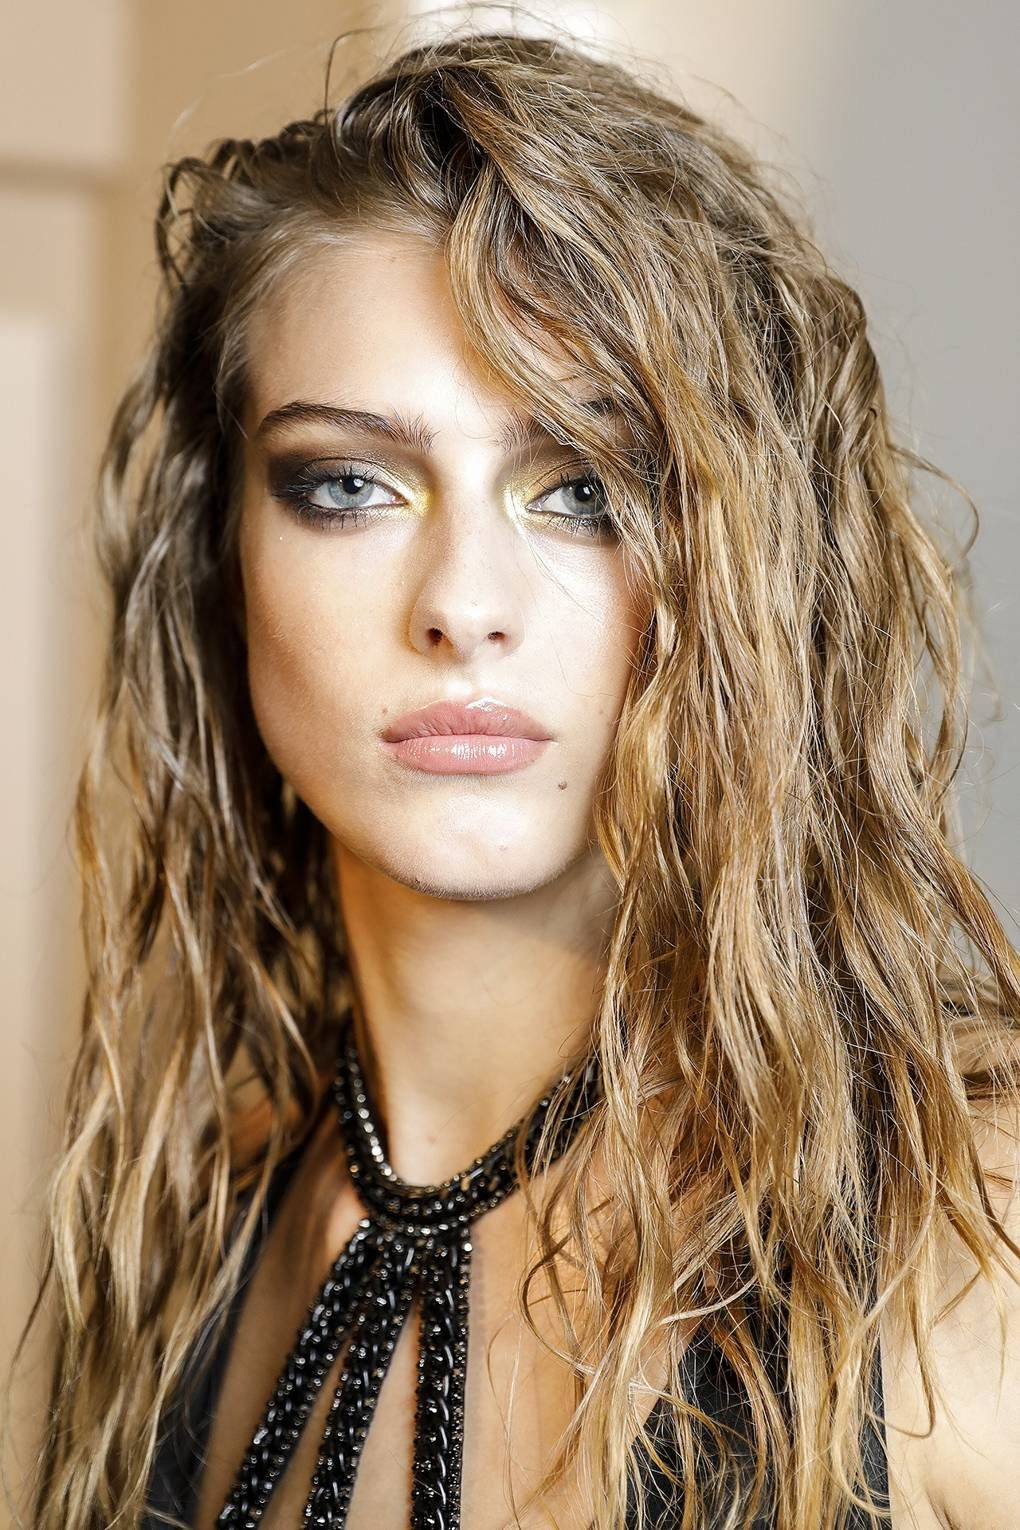 50+ hairstyles for long hair every girl with lengthy locks will love